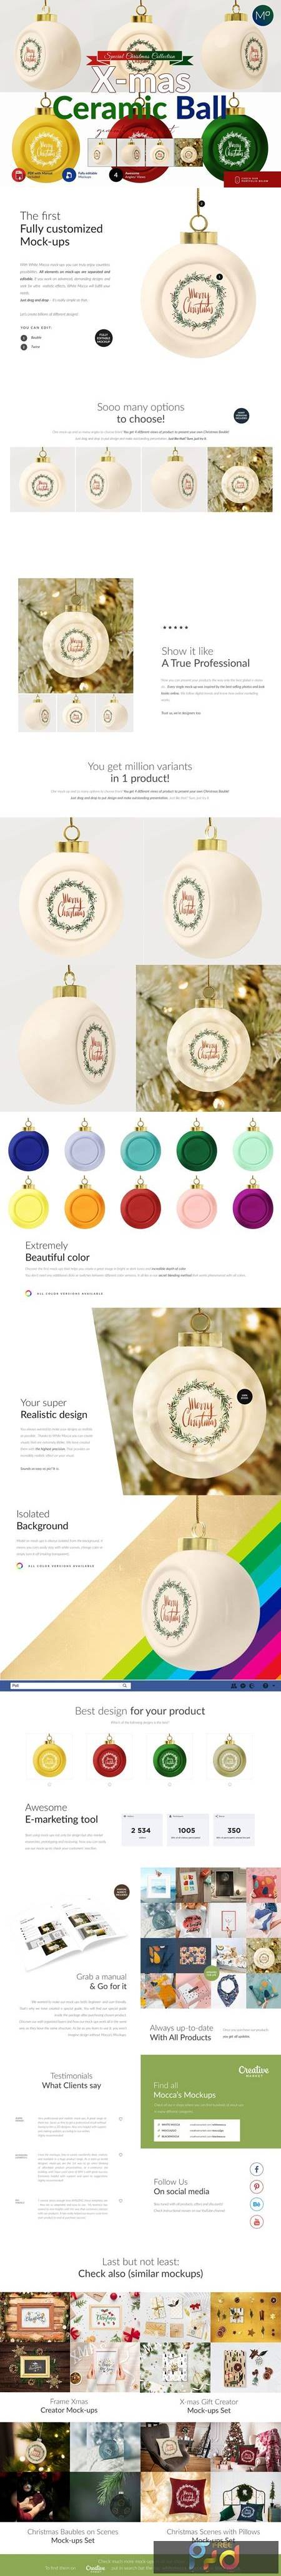 Ceramic X-mass Ball Mock-ups 5636720 1